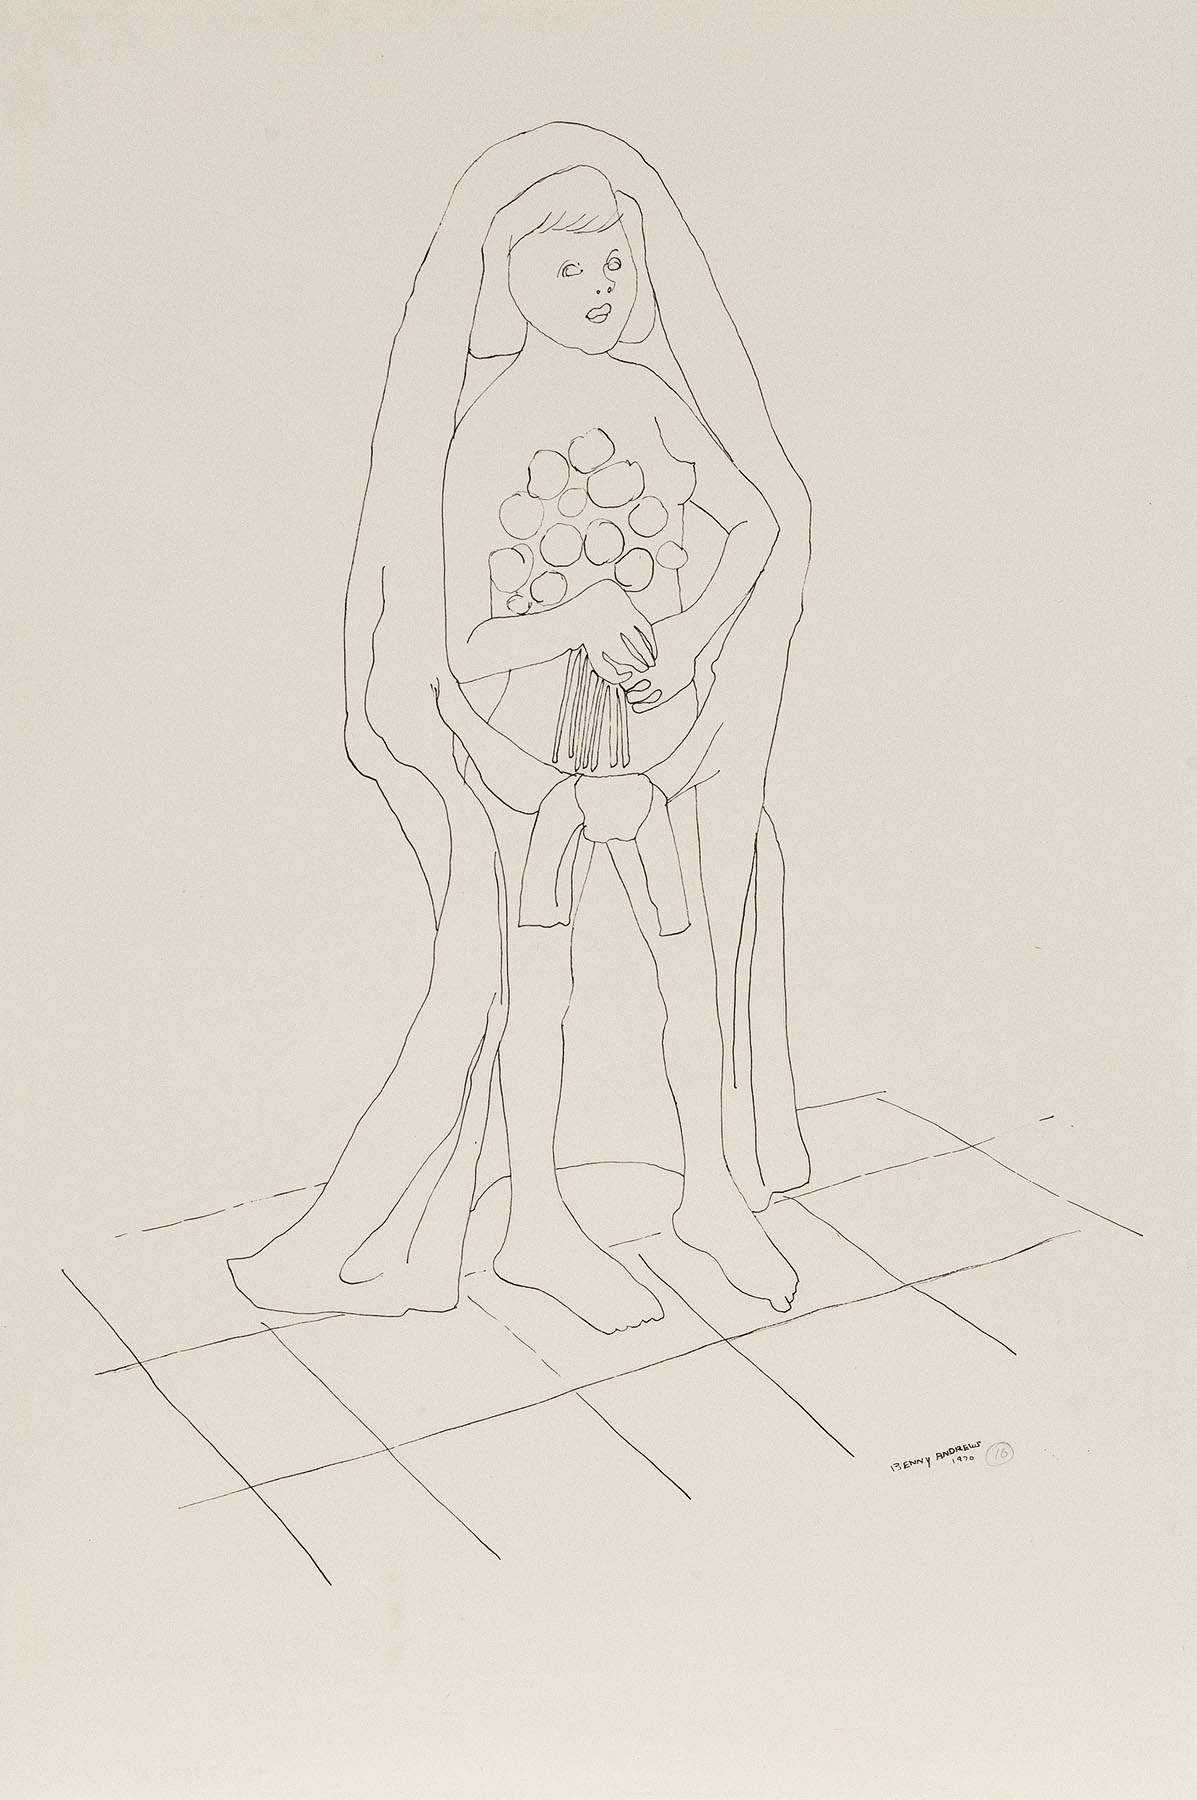 """Bride (Study for Symbols), 1970 pen and ink on paper 18 x 12.5"""""""